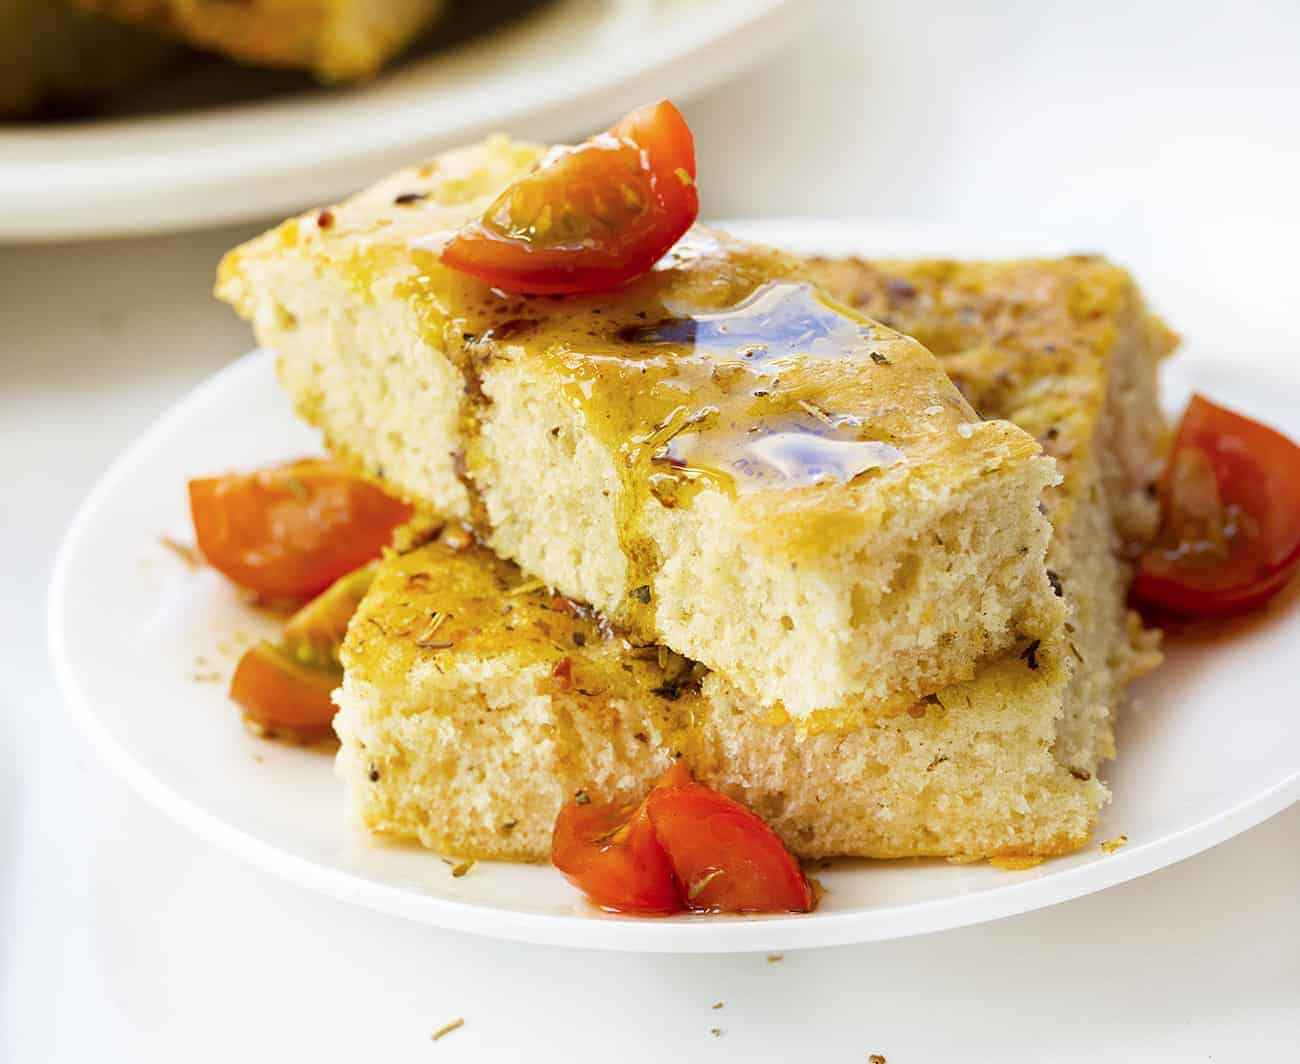 Focaccia Bread that has been Drizzled with Oil and Balsamic Vinegar on a White Plate with Tomato